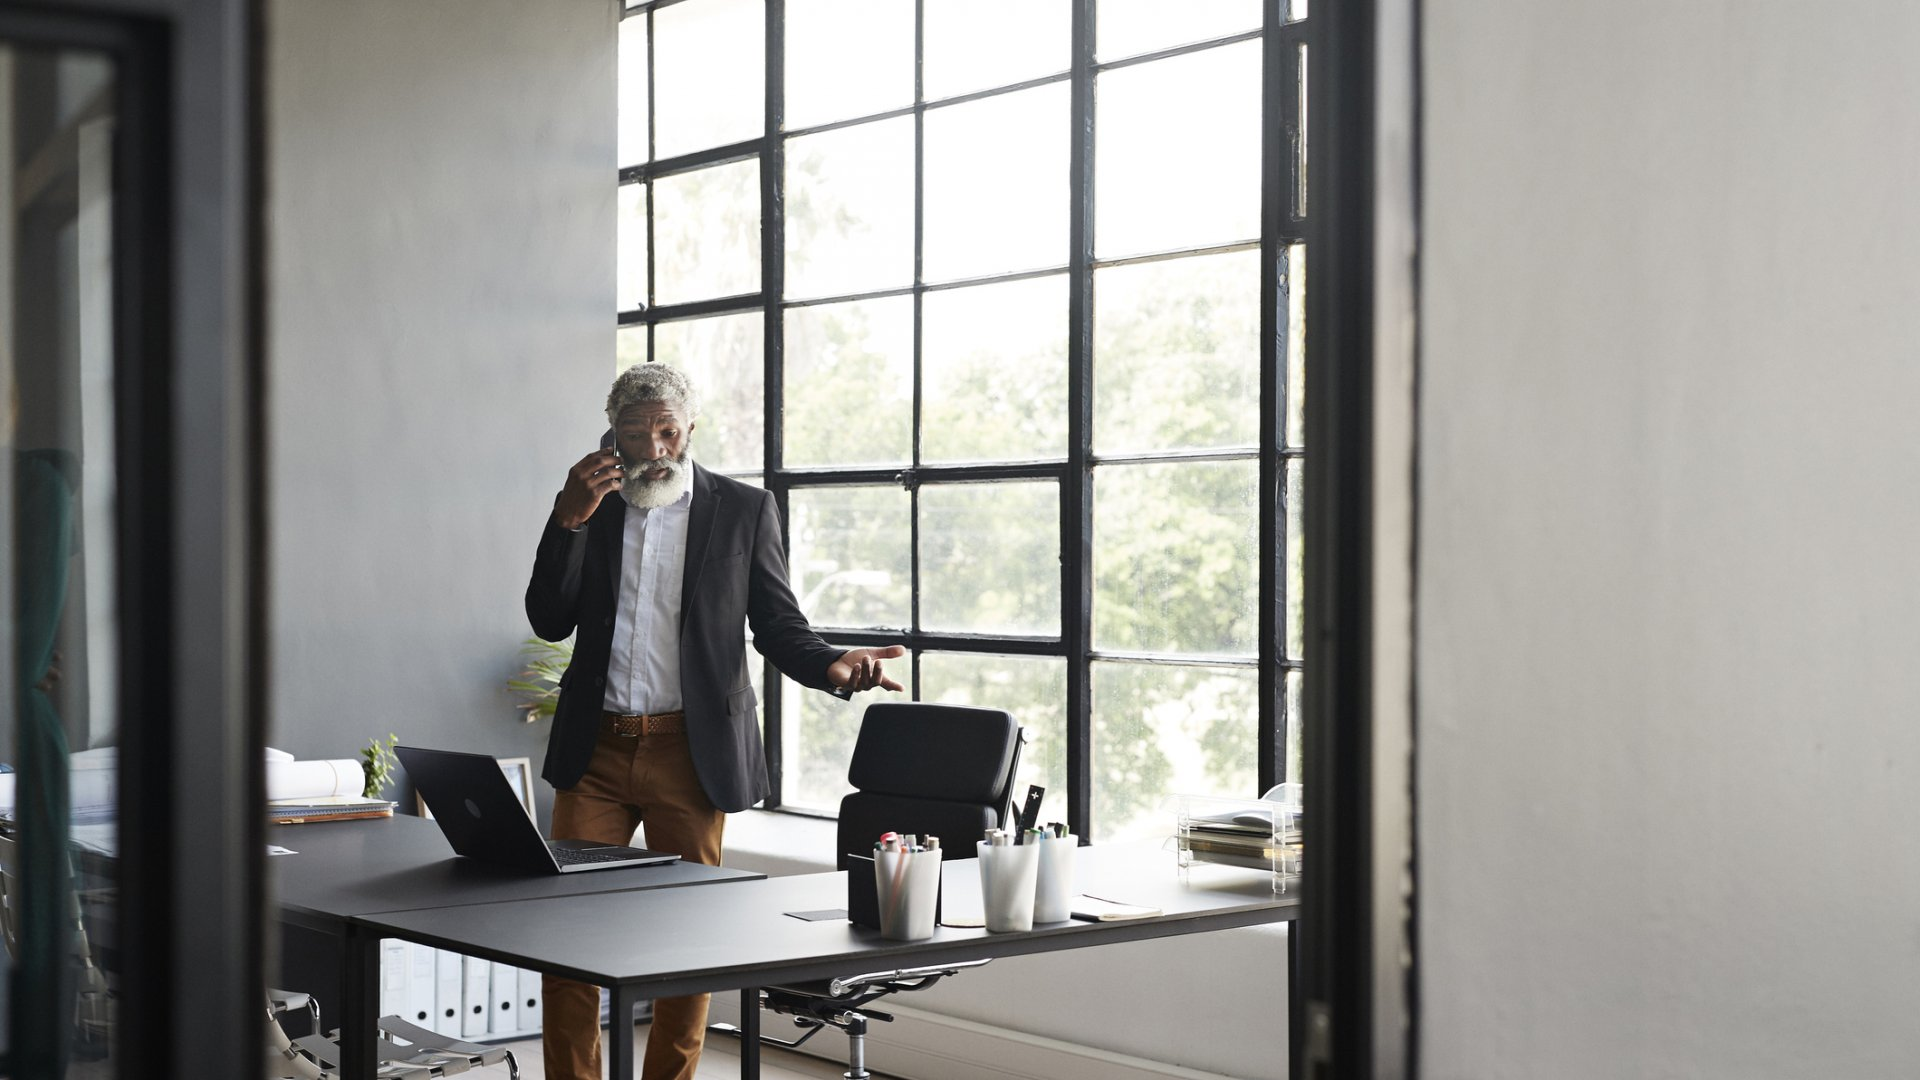 Why Now Is the Time to Have a Second Career as an Entrepreneur